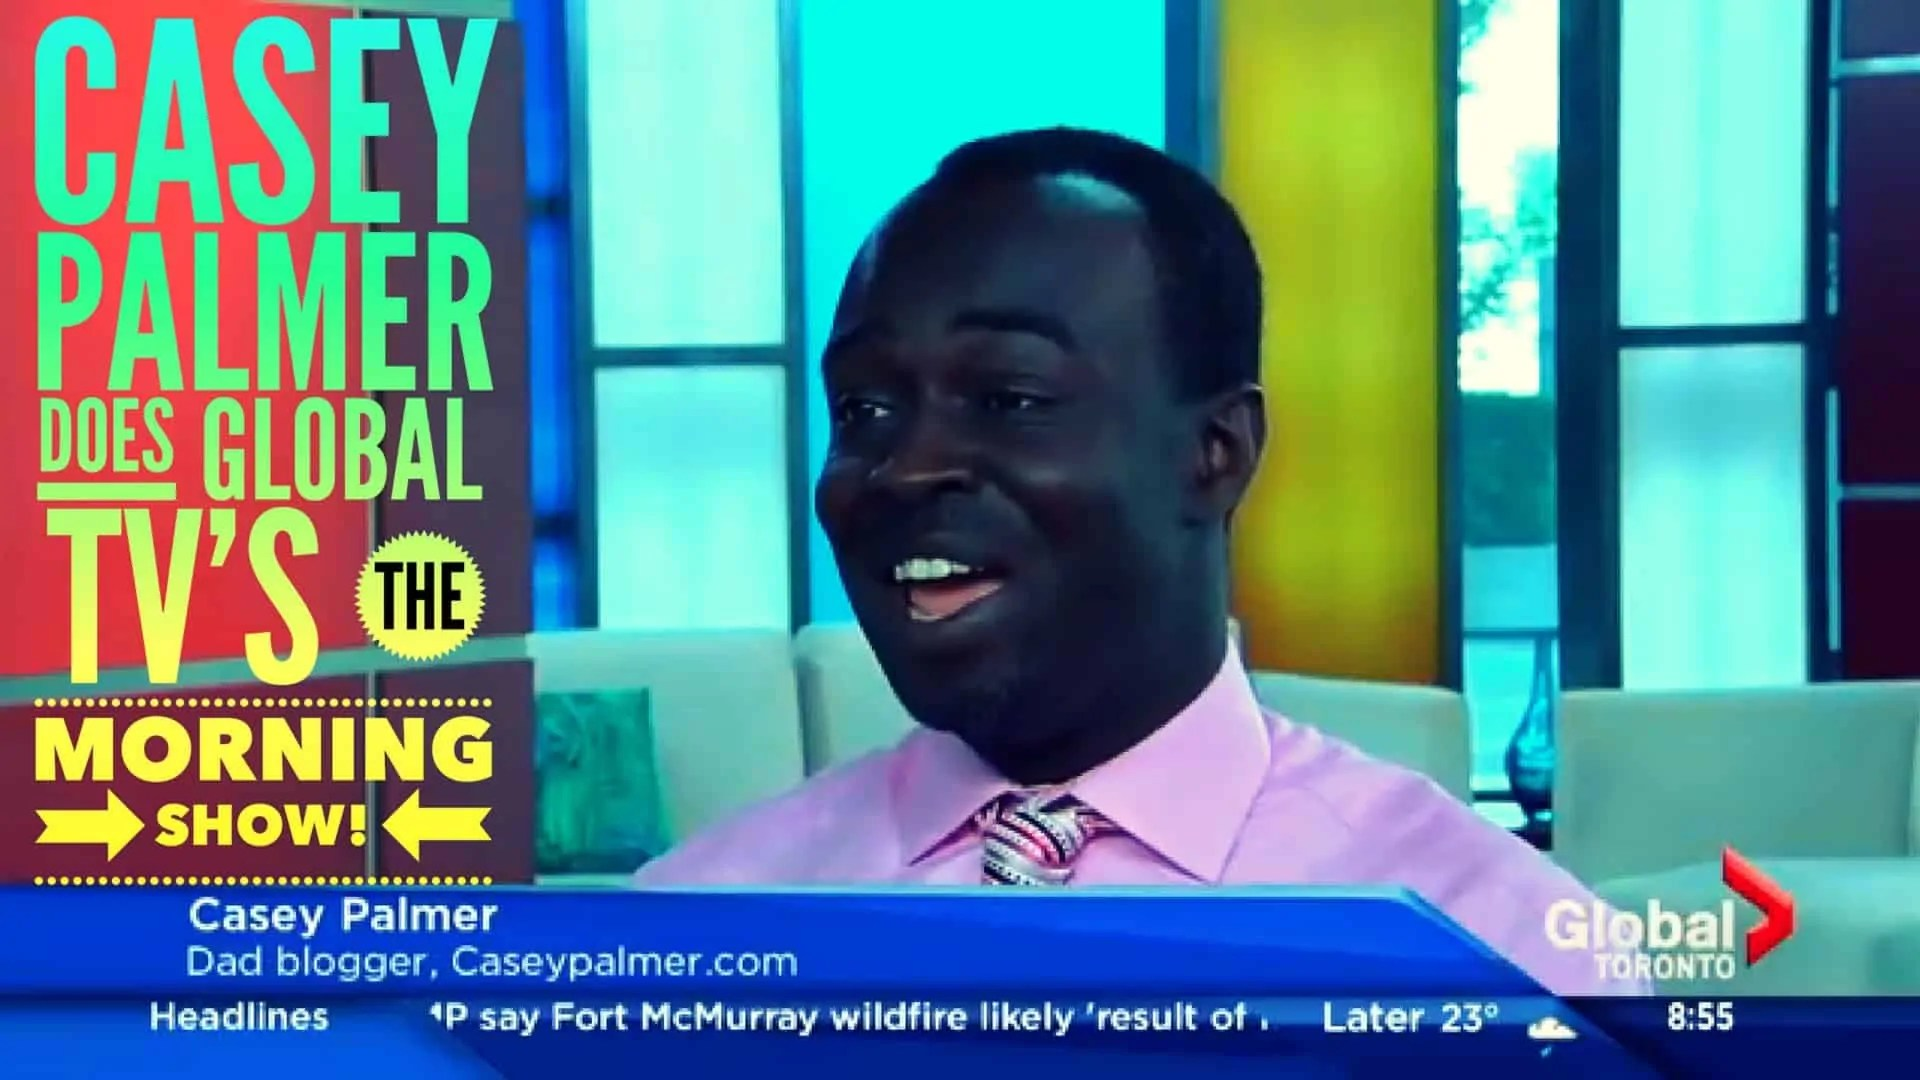 Casey Palmer Does Global TV's The Morning Show! (Featured Image)